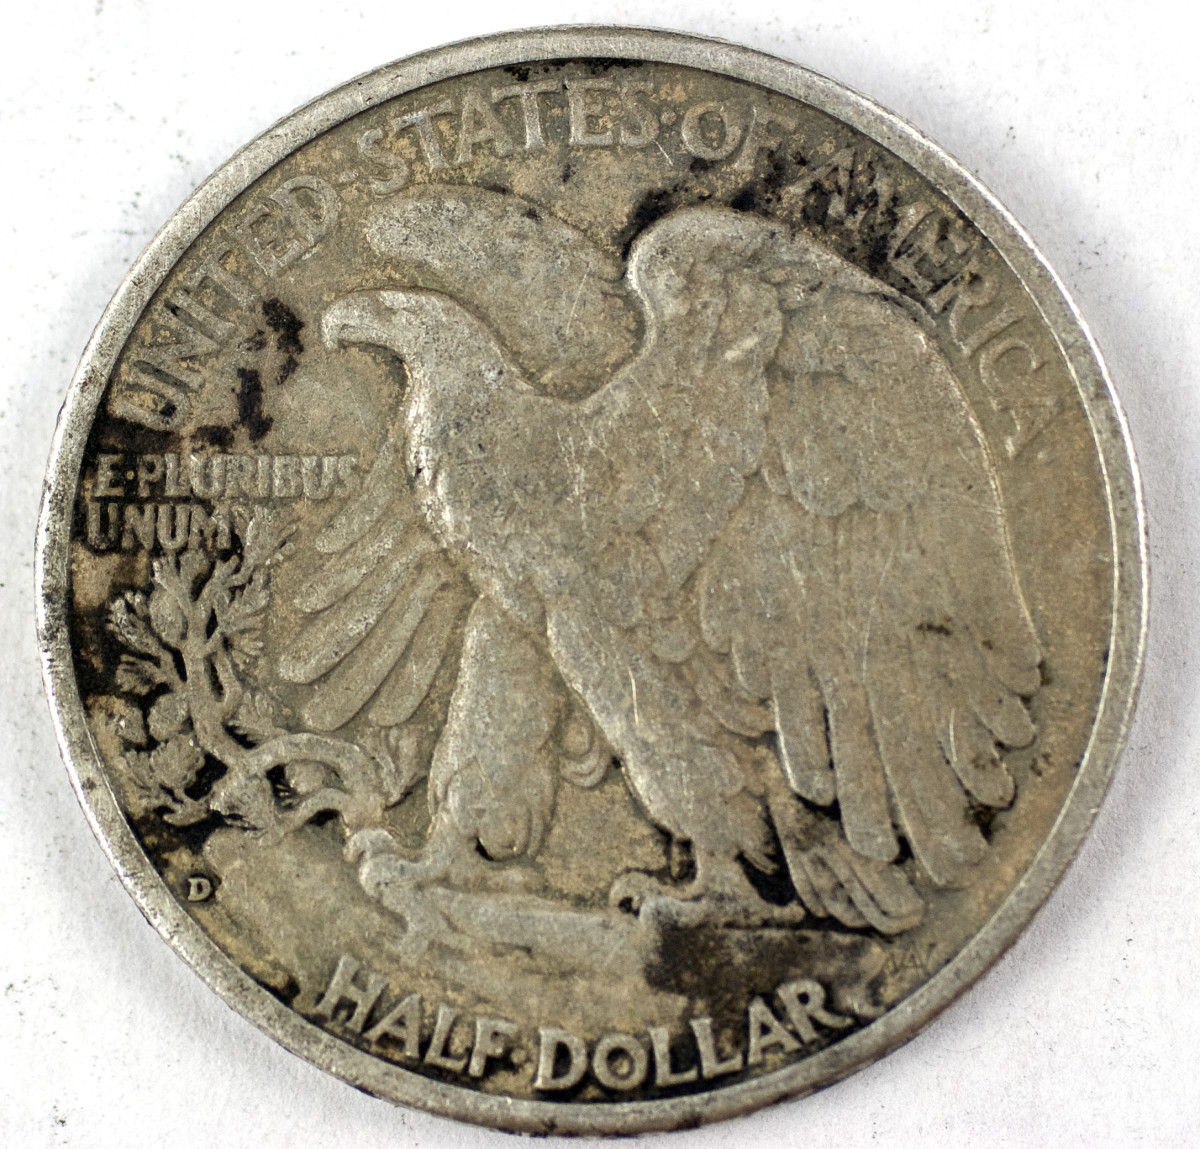 1943 half dollar found after many searches.